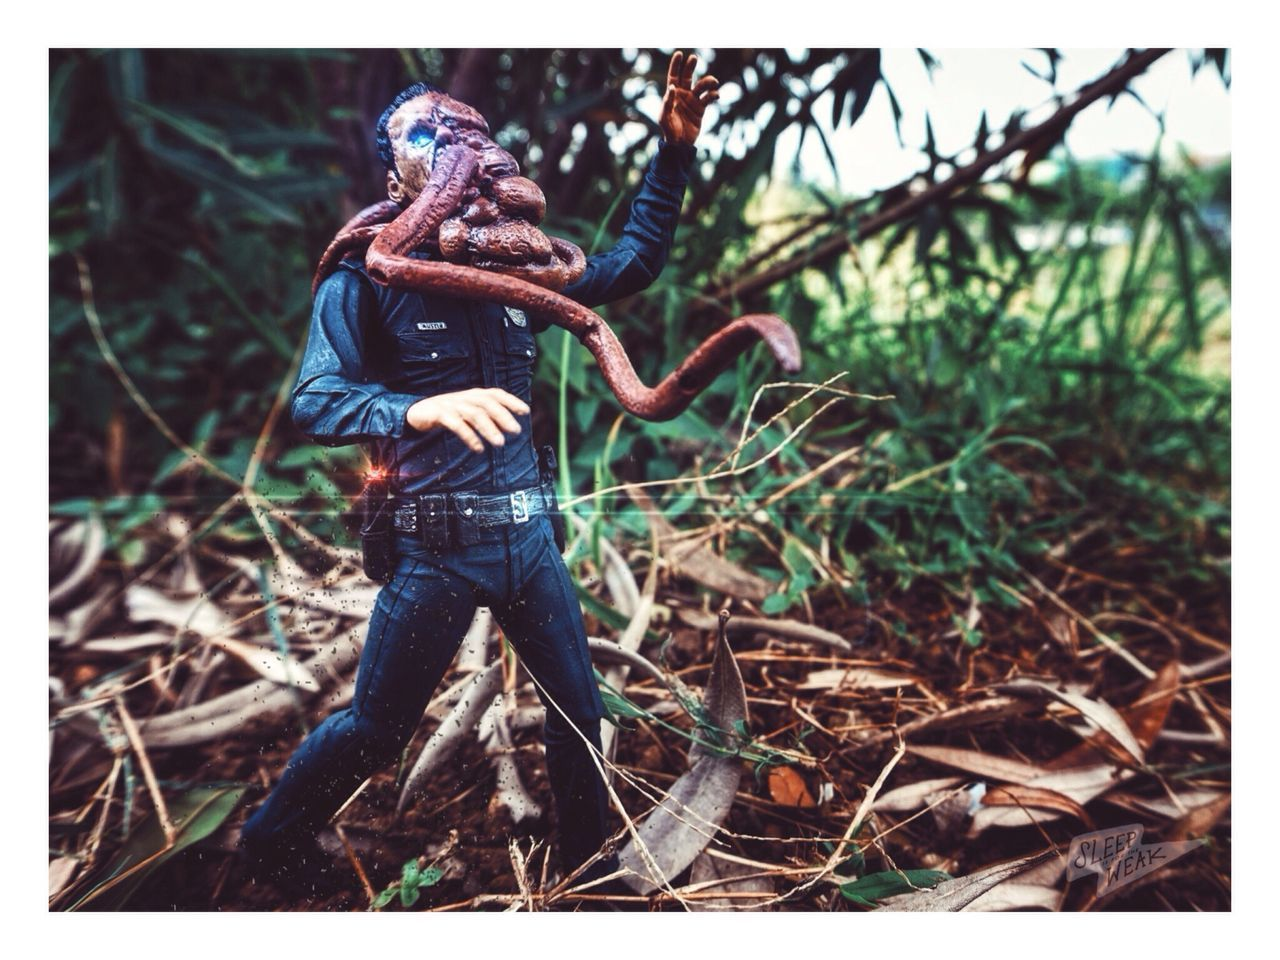 Spreading the disease! 💀 Zombie Toygroup_alliance Toyphotography Epictoyart Toyplanet Toysarehellasick Toycrewbuddies Toysaremydrug Toycommunity Eyeemphotography Toyoutsiders Photography Horror Horror Photography Outside Photography Horrortoyphotography Elitehuntingtoyclub EyeEm Toyphotography